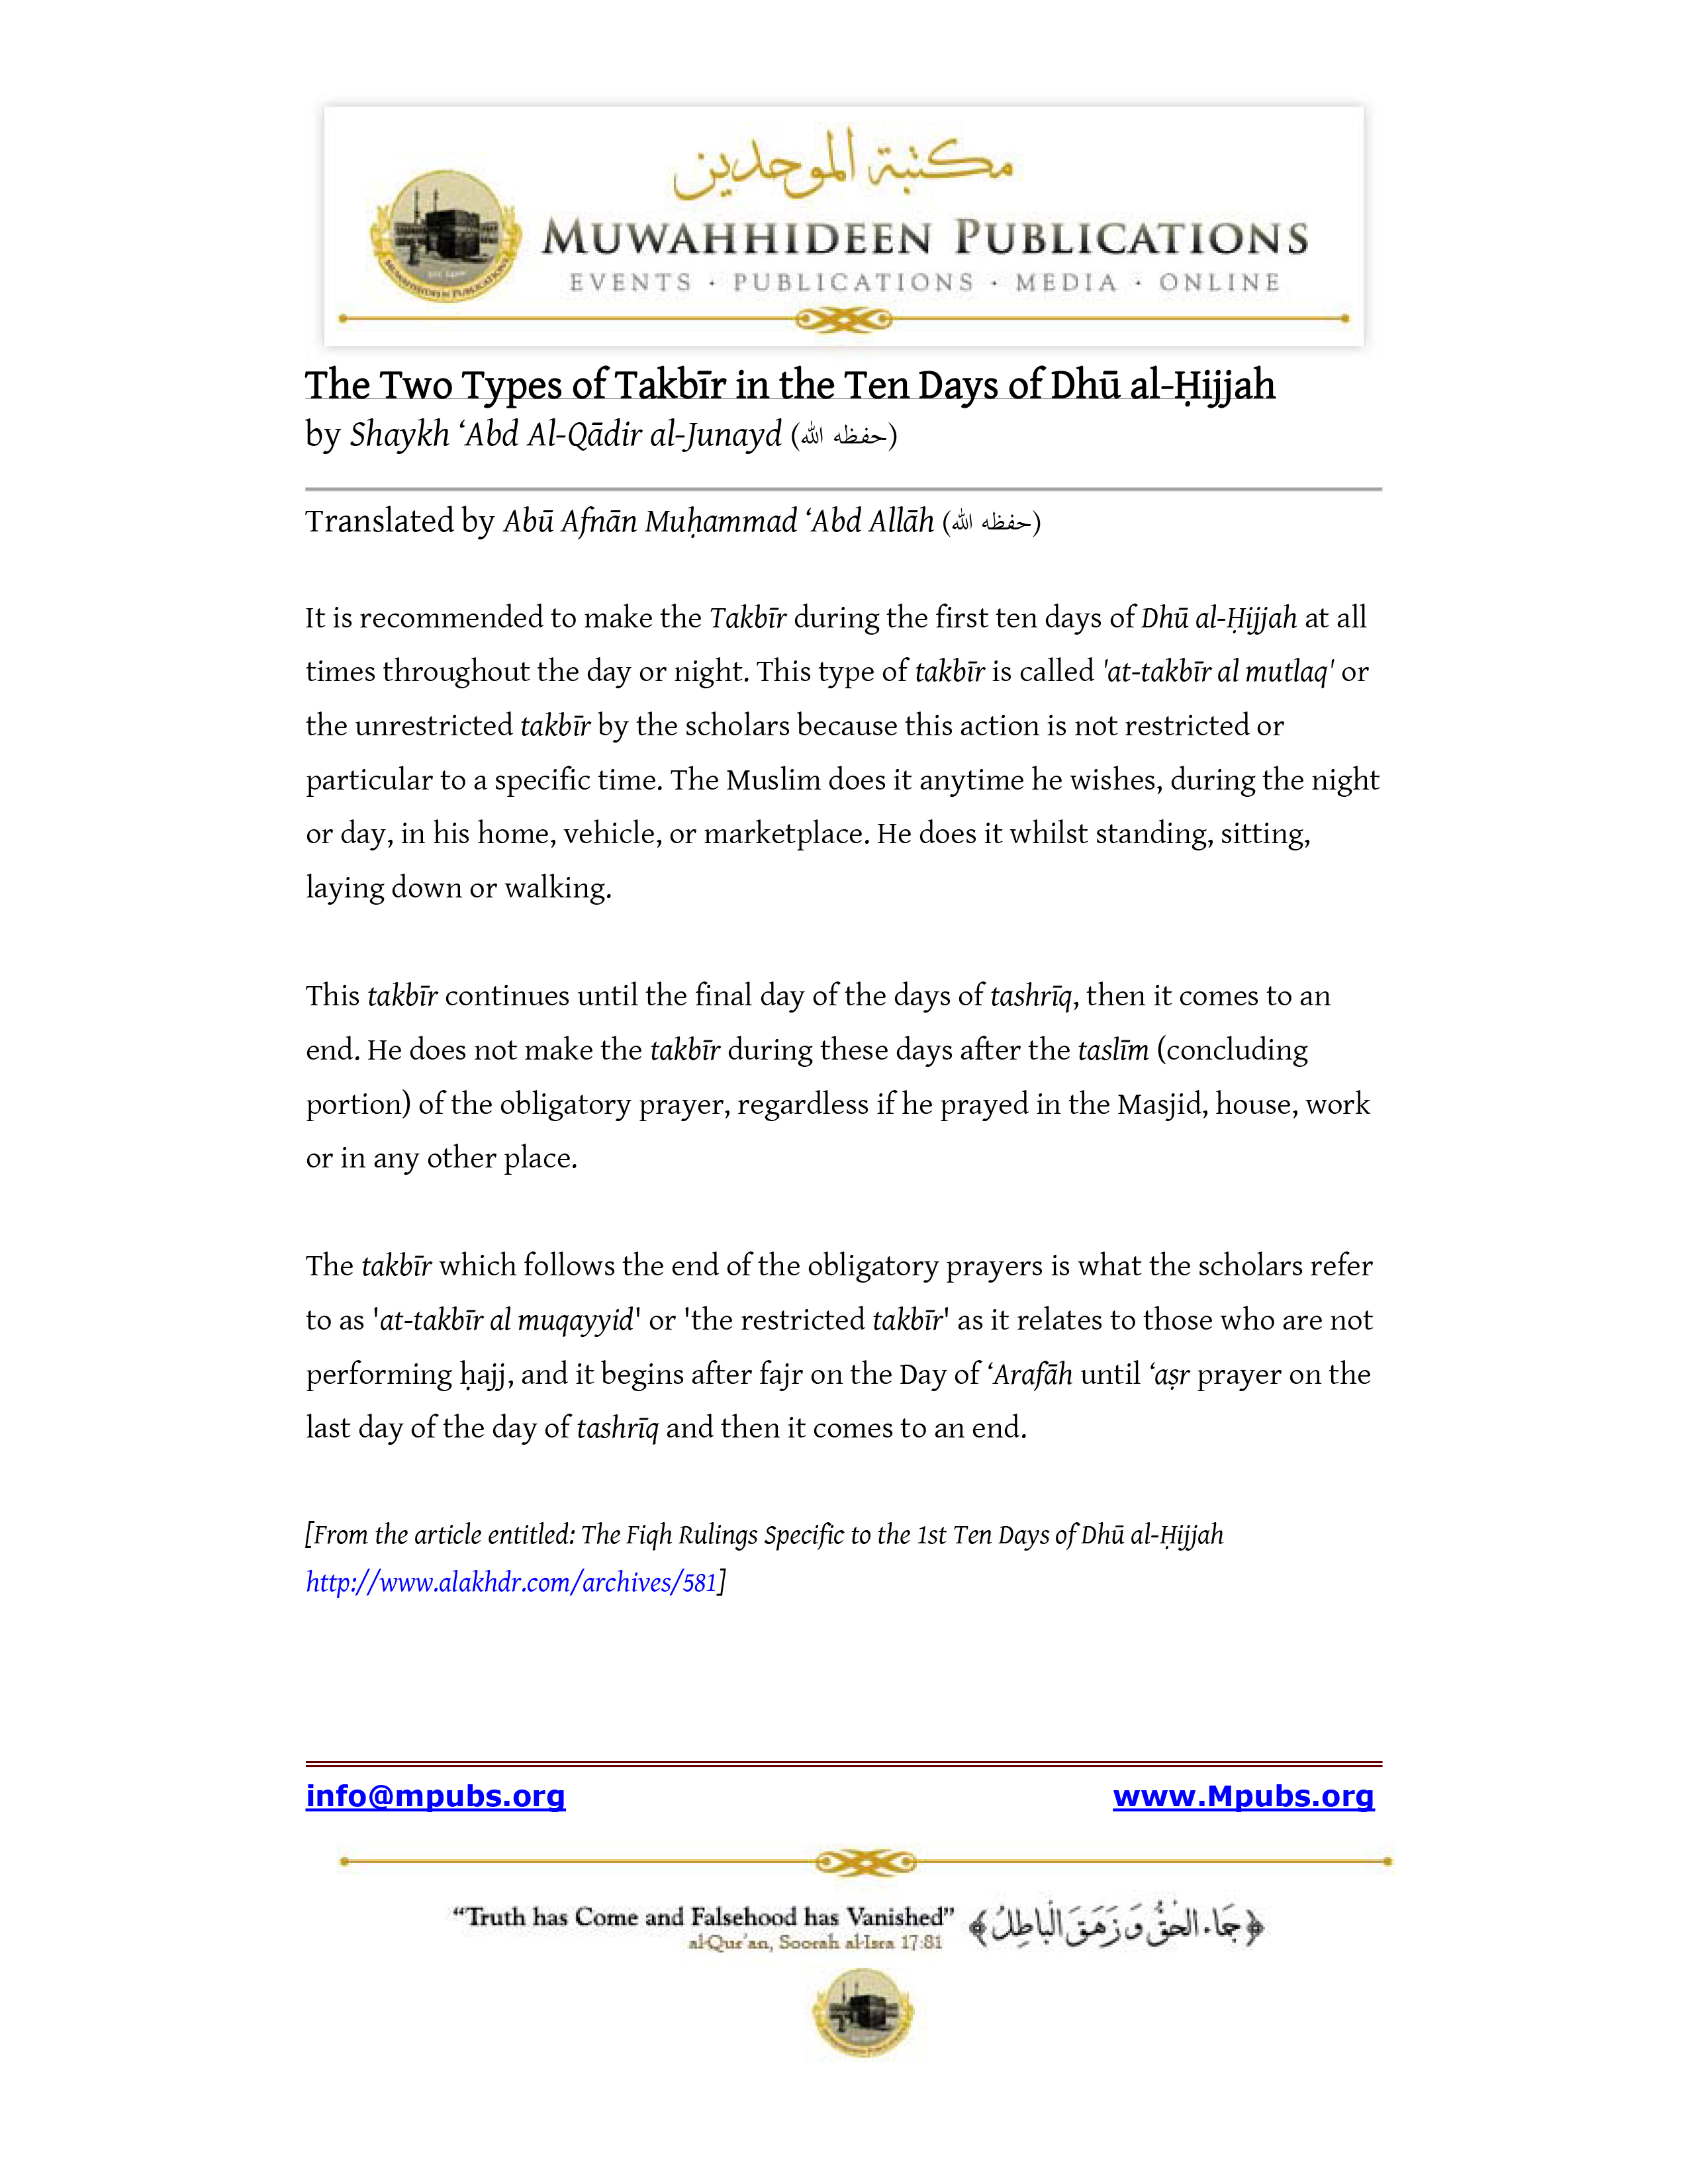 AQJU_20160910_the_two_types_of_takbeer_in_the_first_ten_days_of_dhul_hijjah